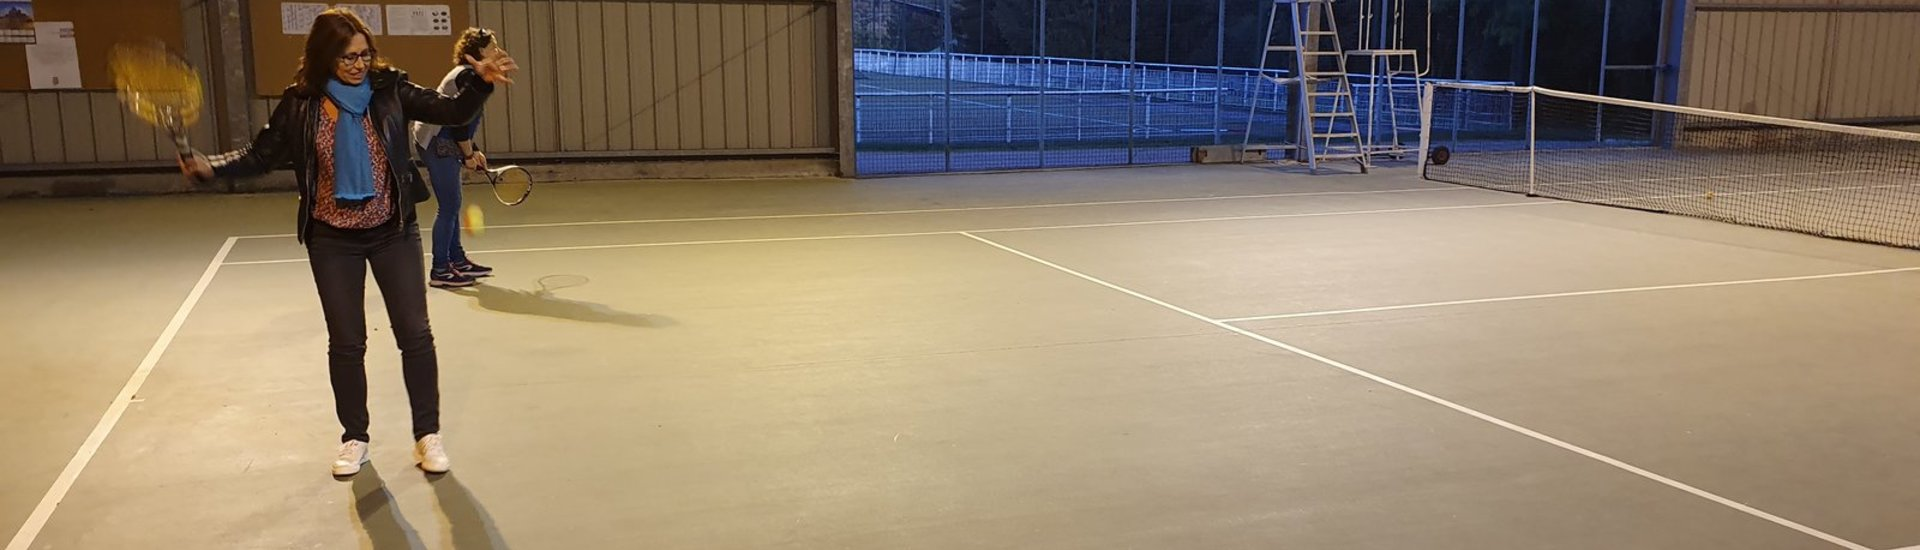 Formation Enseignants Partenariat Tennis C2